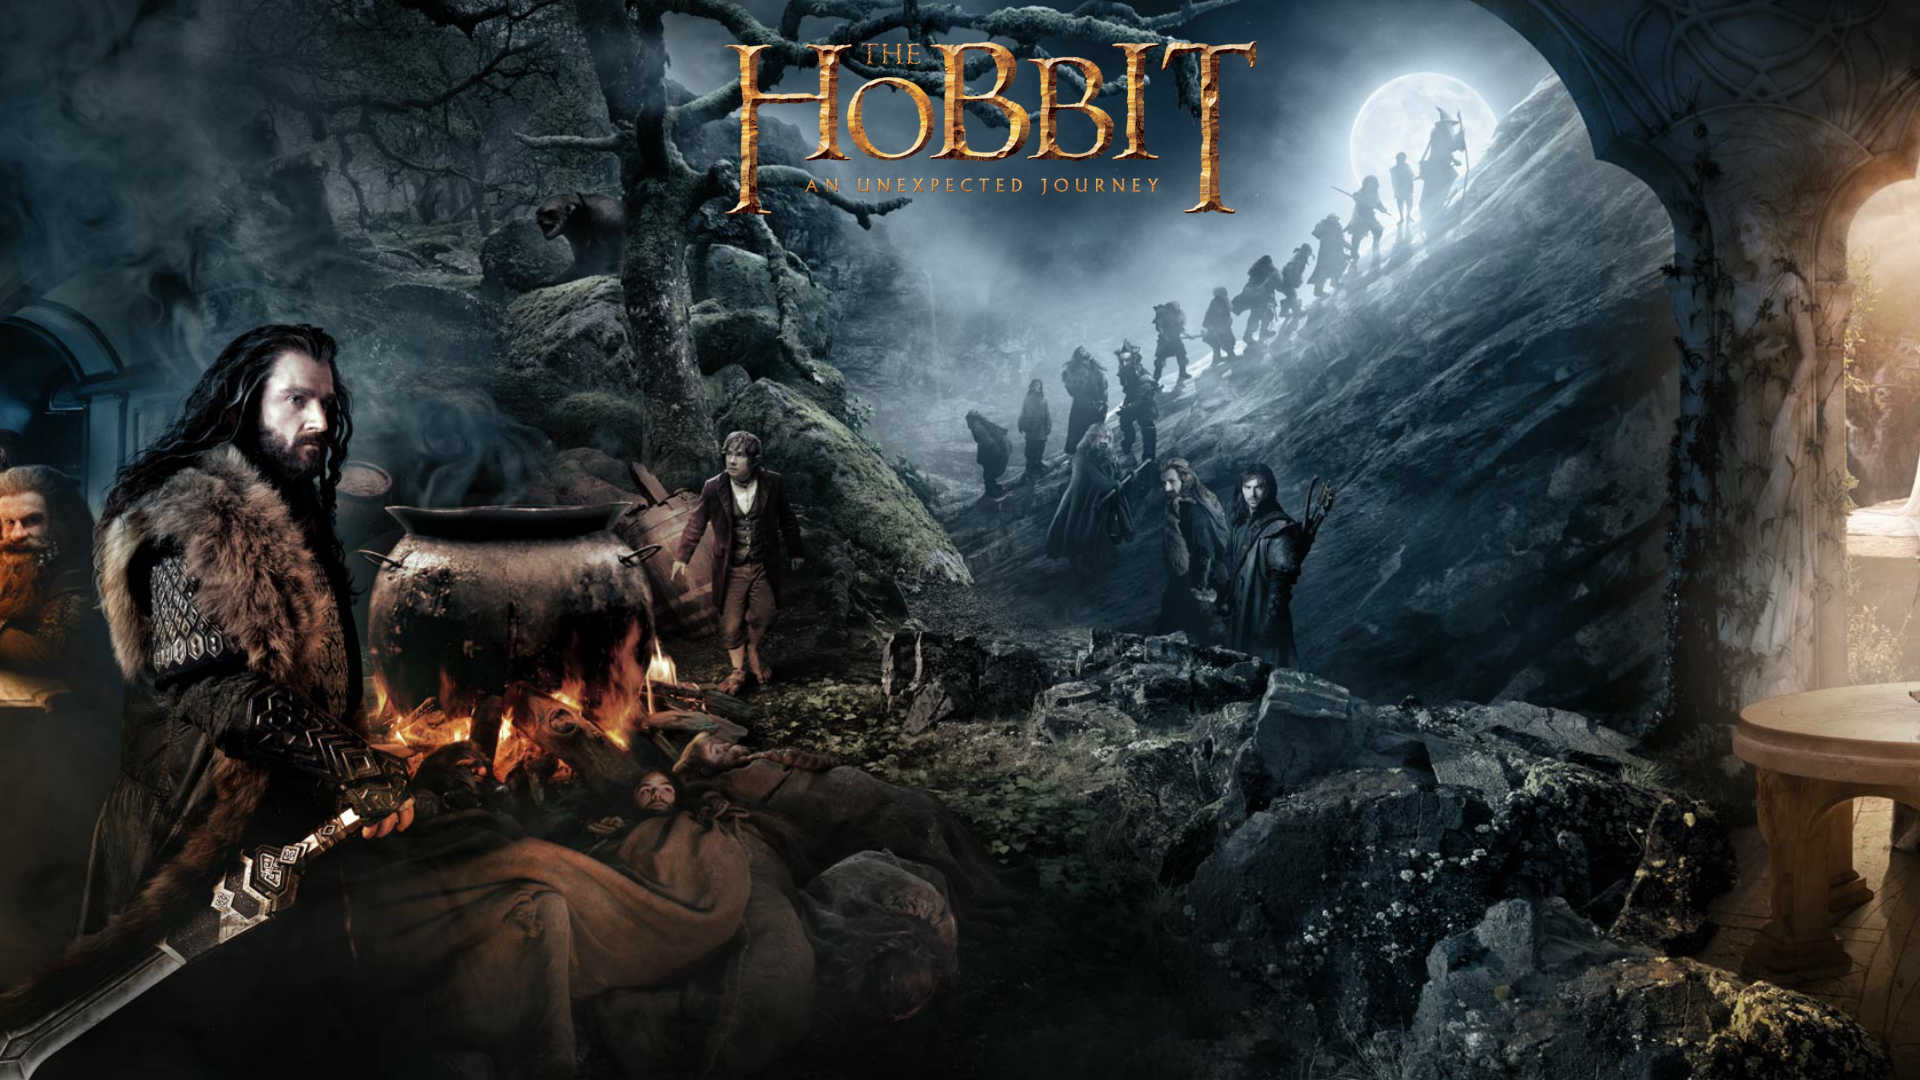 The Hobbit Wallpaper   The Hobbit Wallpaper 33042231 1920x1080